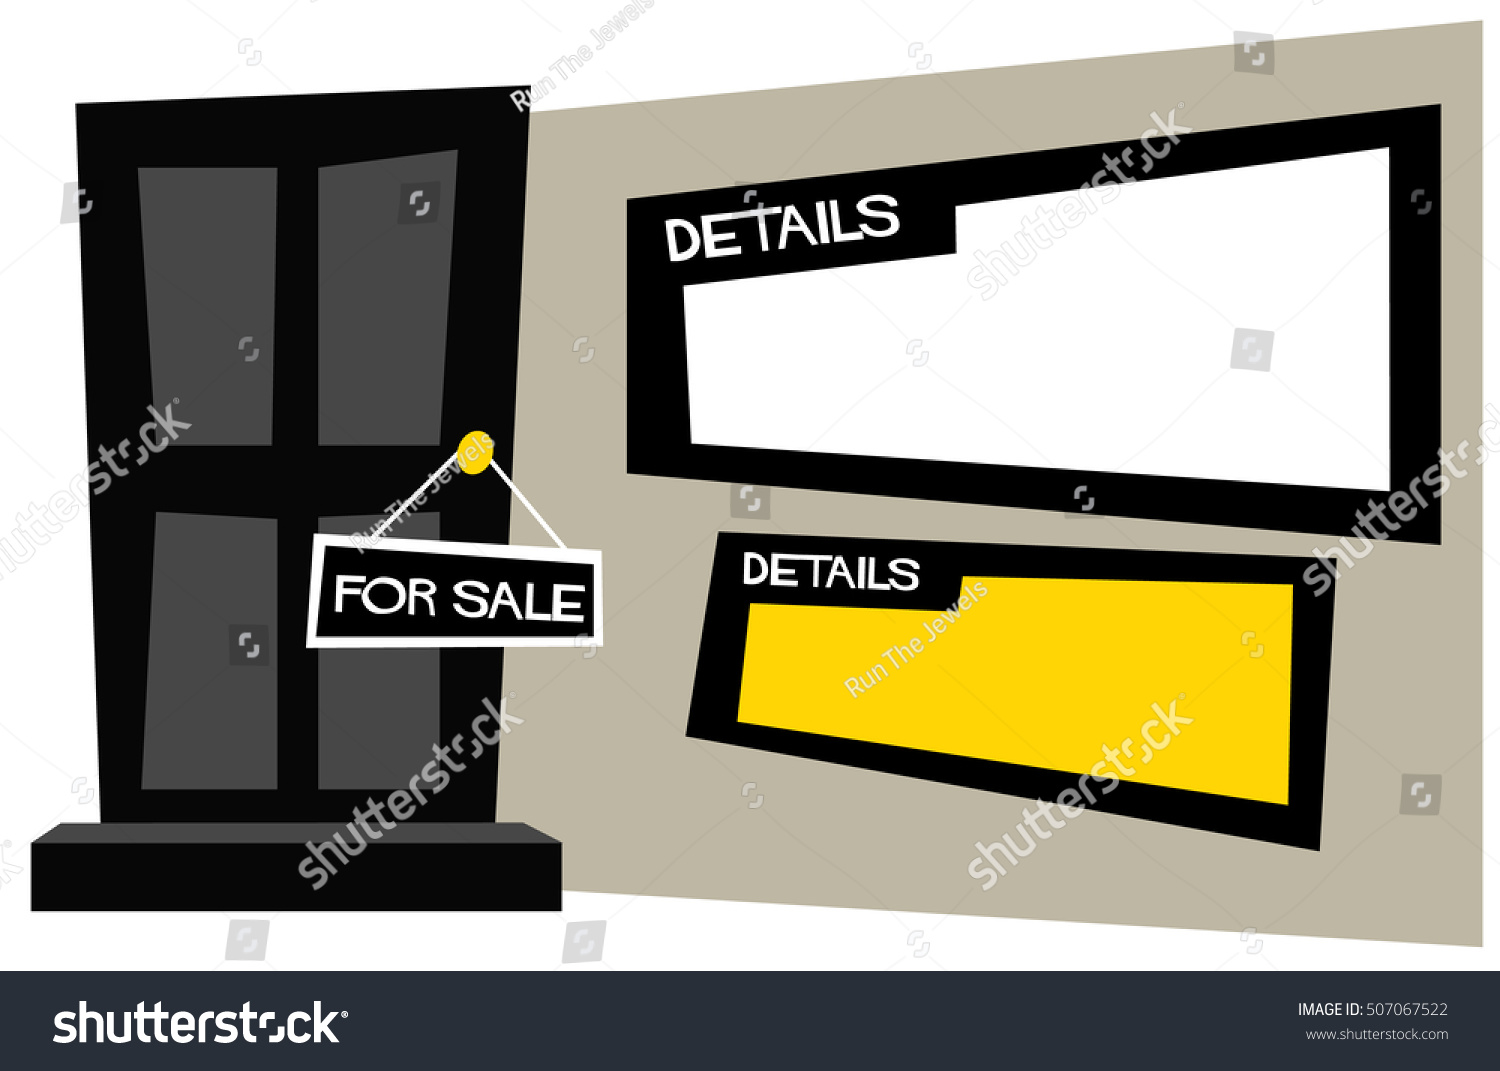 Apartment House Sale Sign Hanging On Stock Vector 507067522 ... on icon house, chart house, label house,